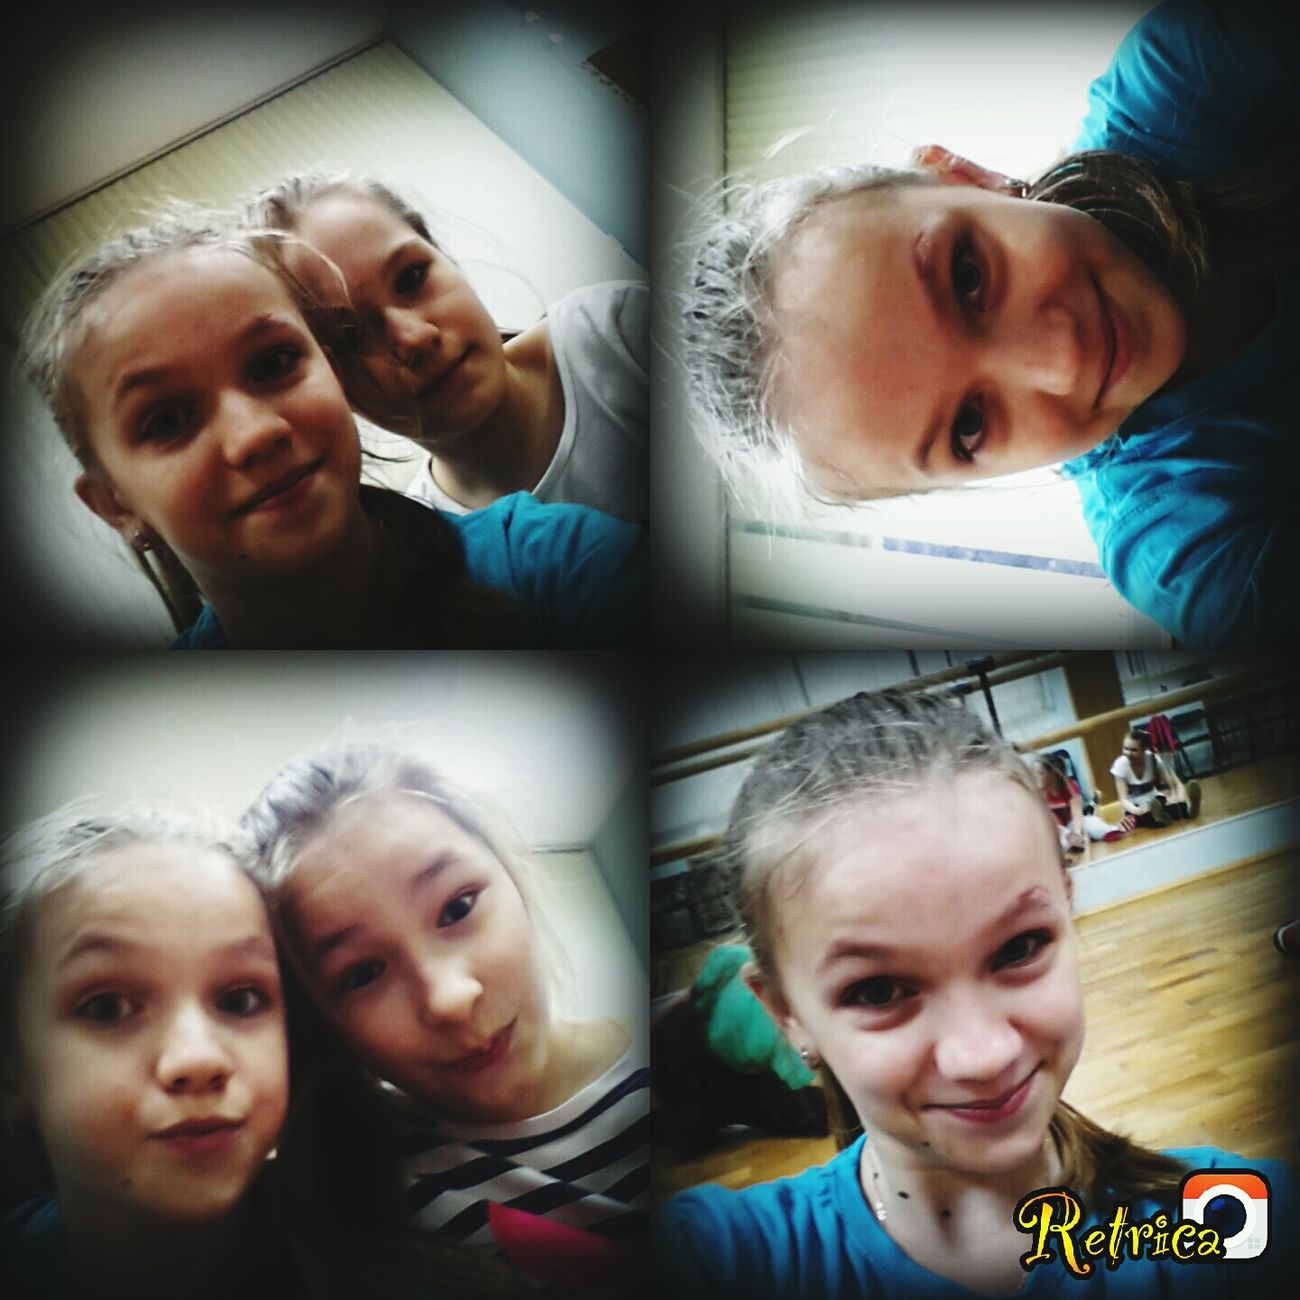 На танцах) беспаливноть DANCE ♥ Retrica✌ Hello World Hi!